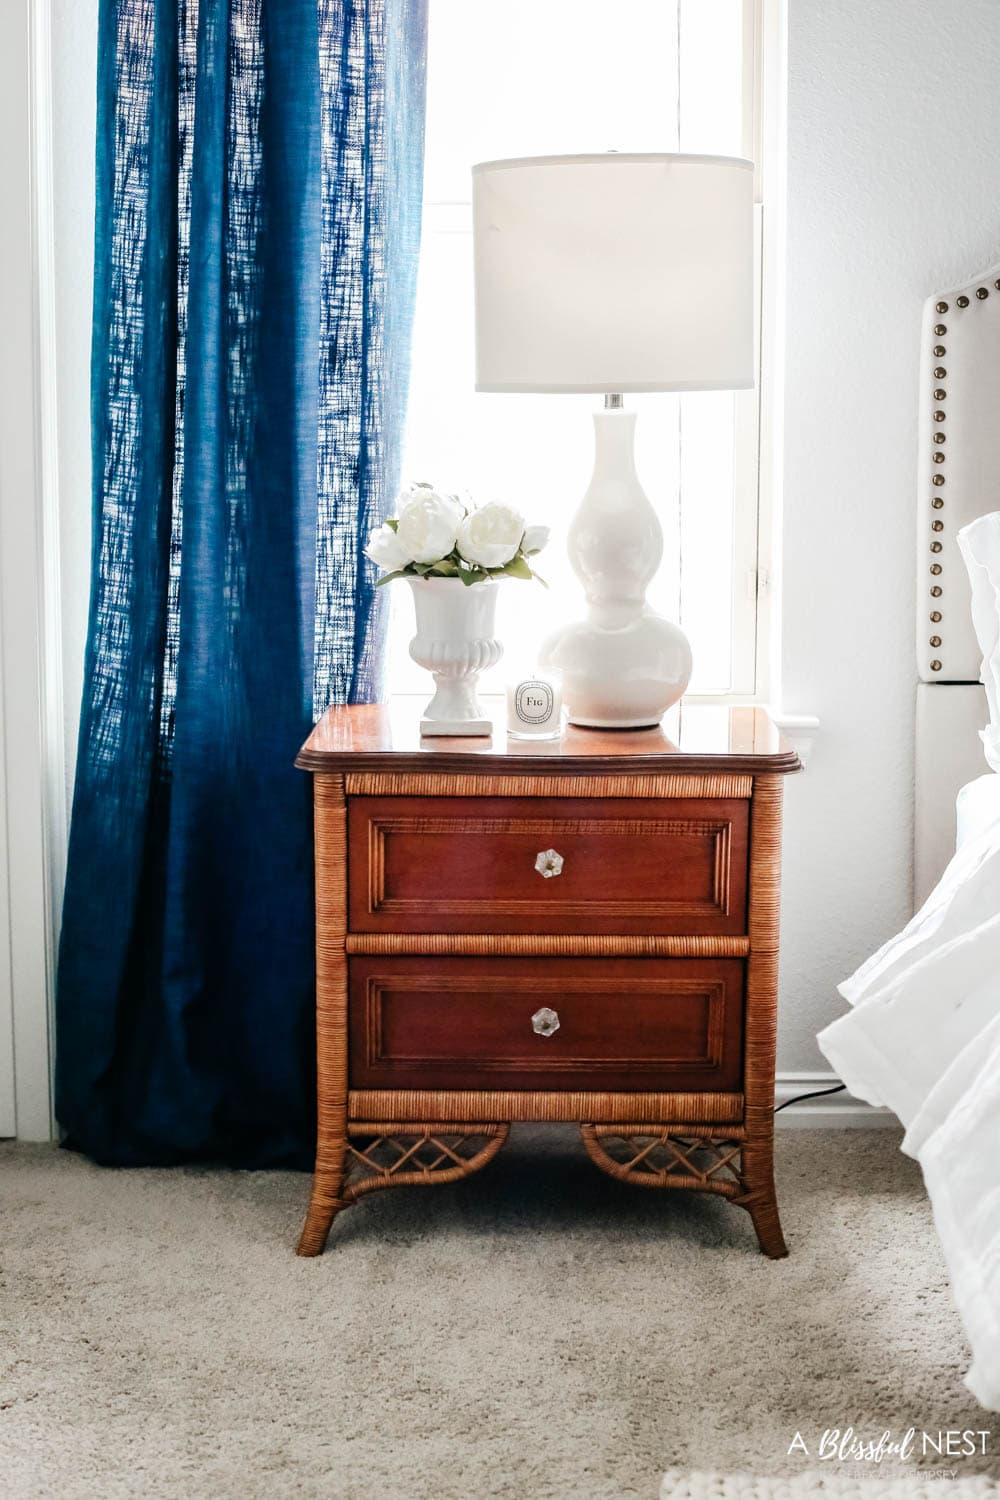 The Best Website to Access Estate Sales in Dallas and Beyond + Guest Bedroom Update